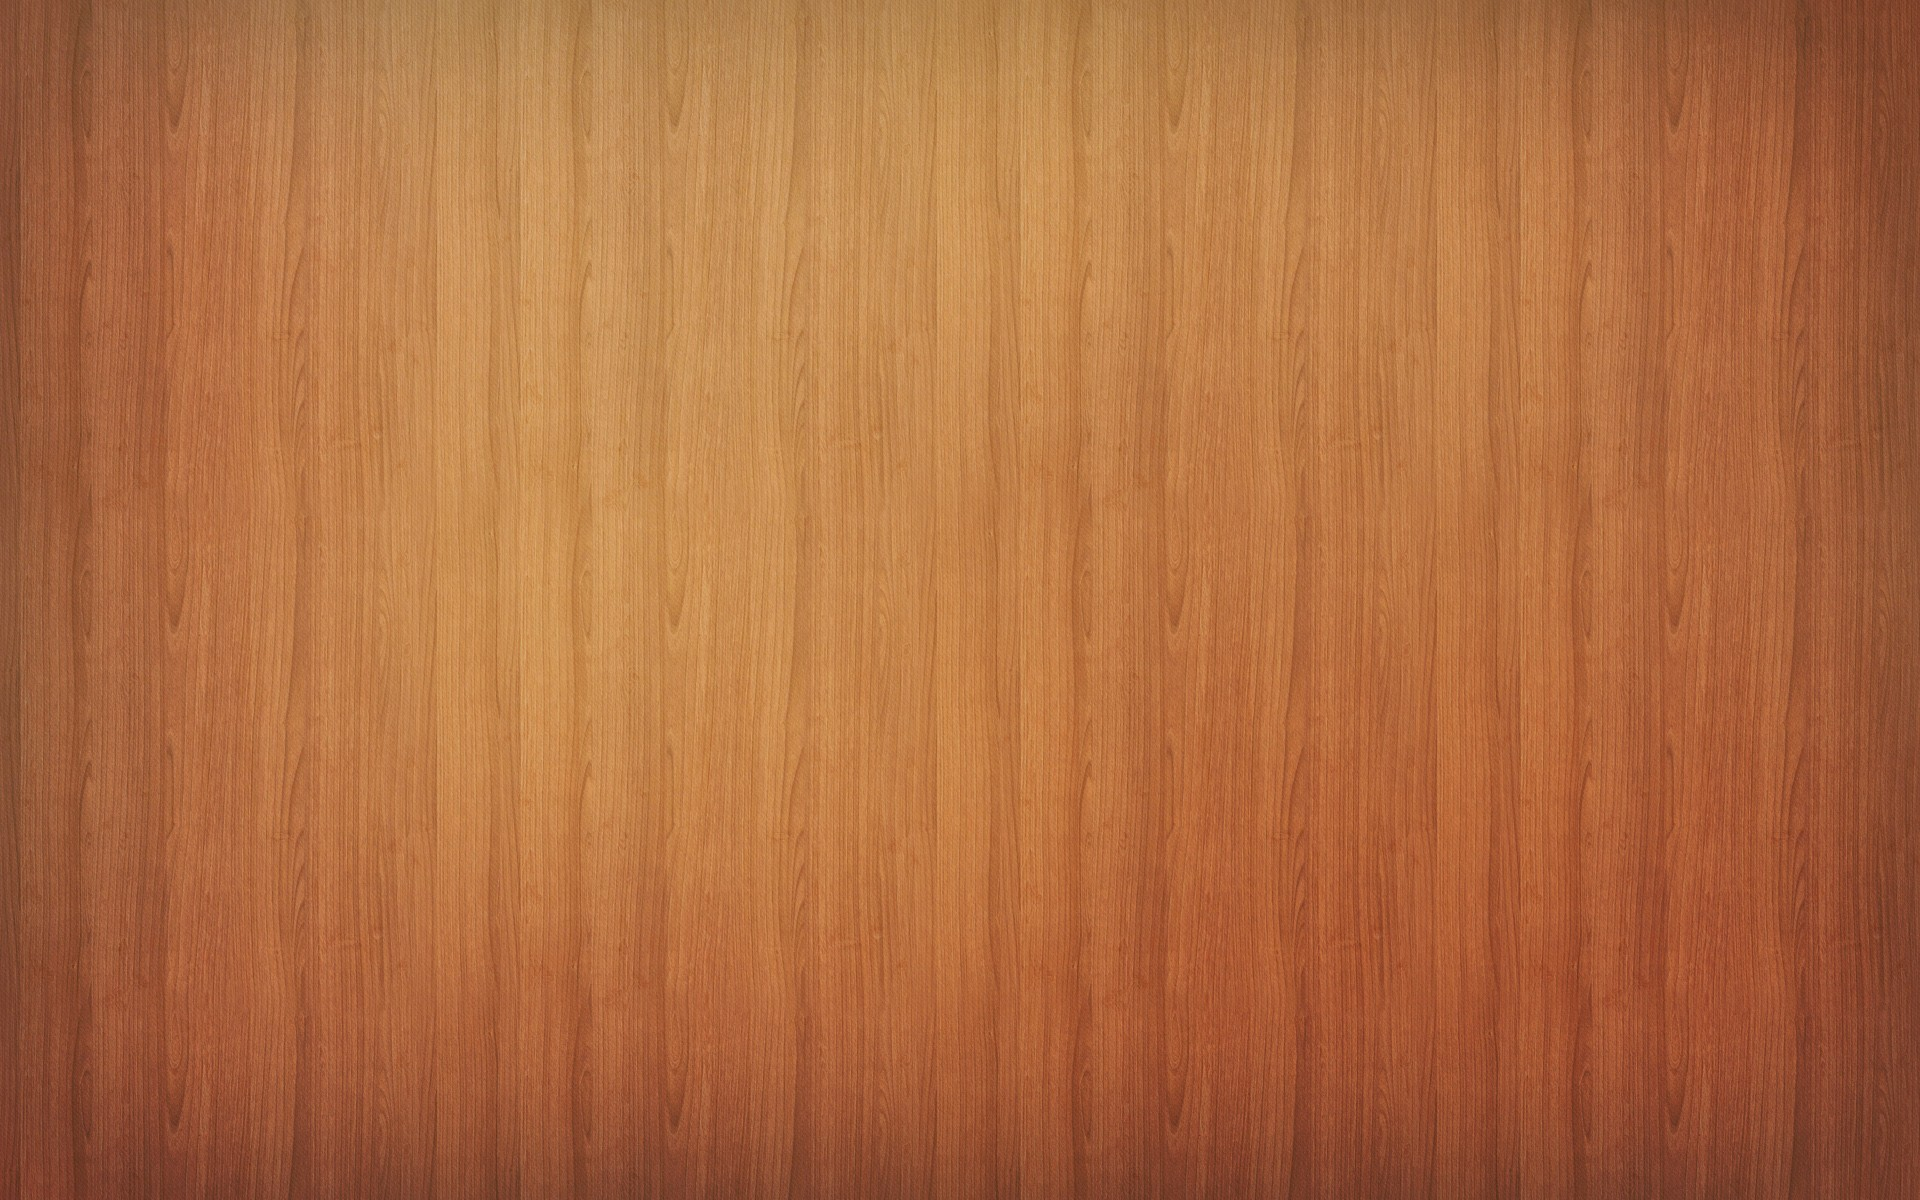 1920x1200 Wood Wallpaper